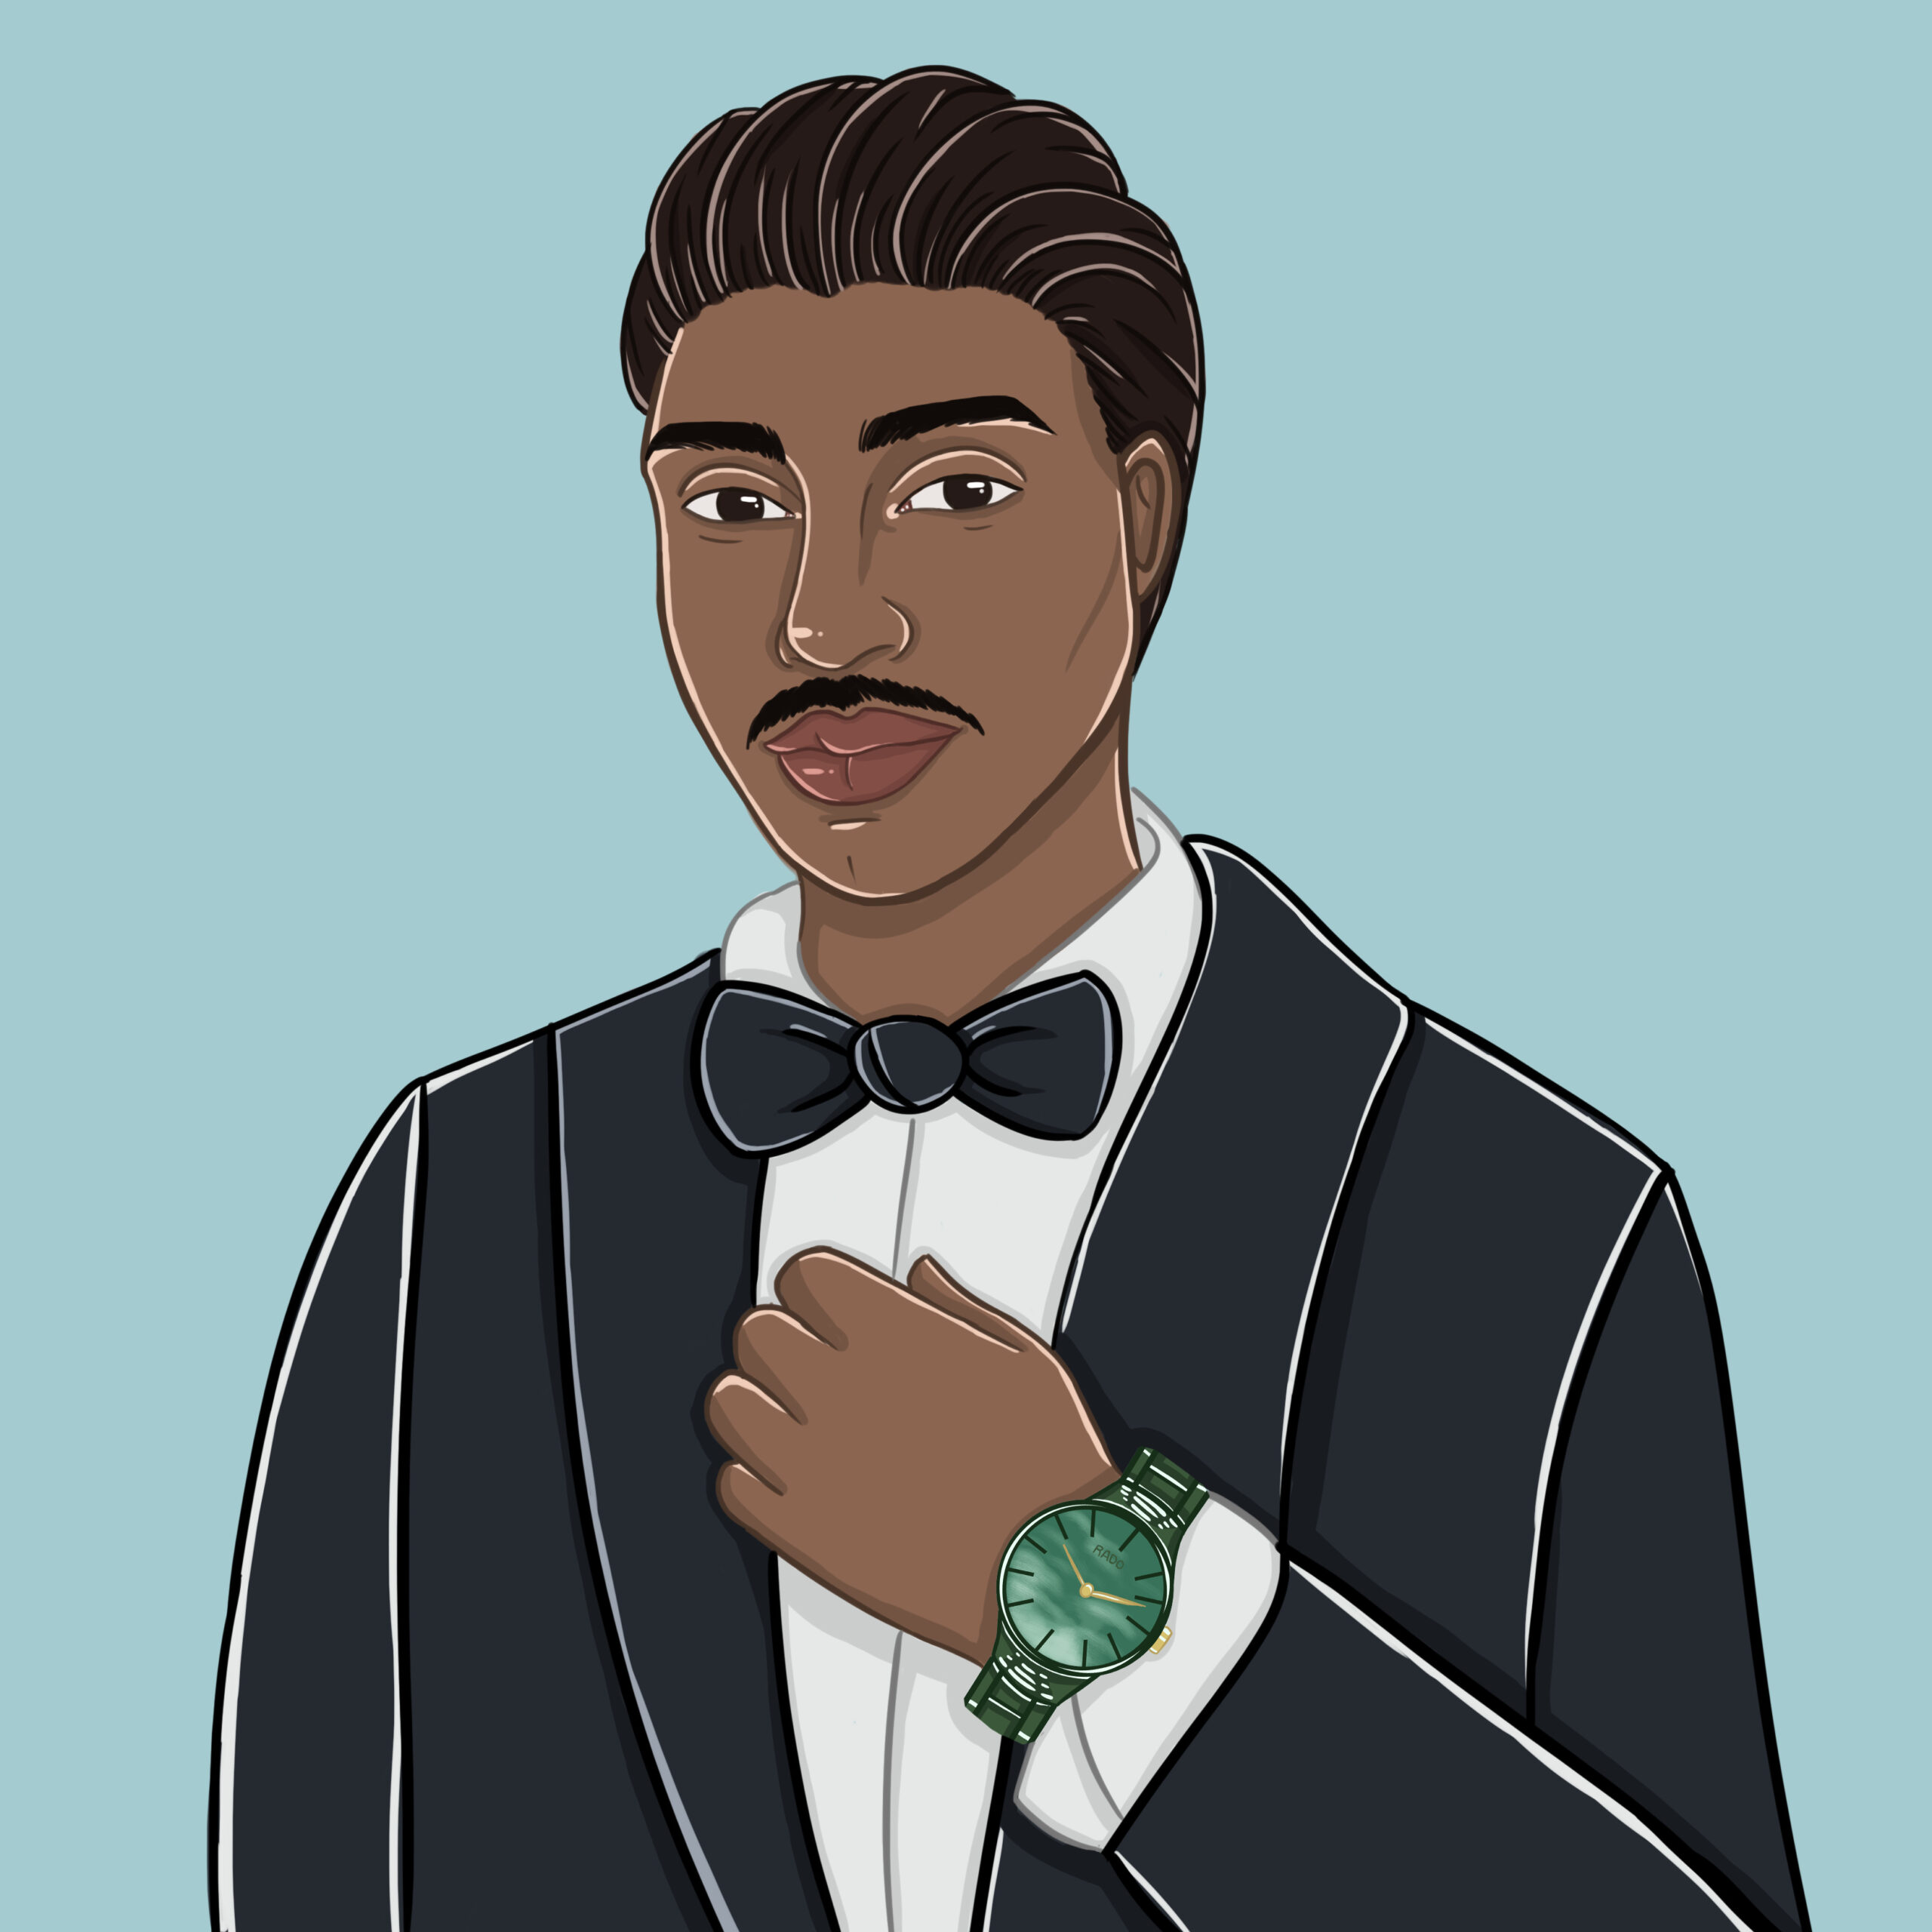 Vaughn lowery illustrated by Allison Christensen for hair article